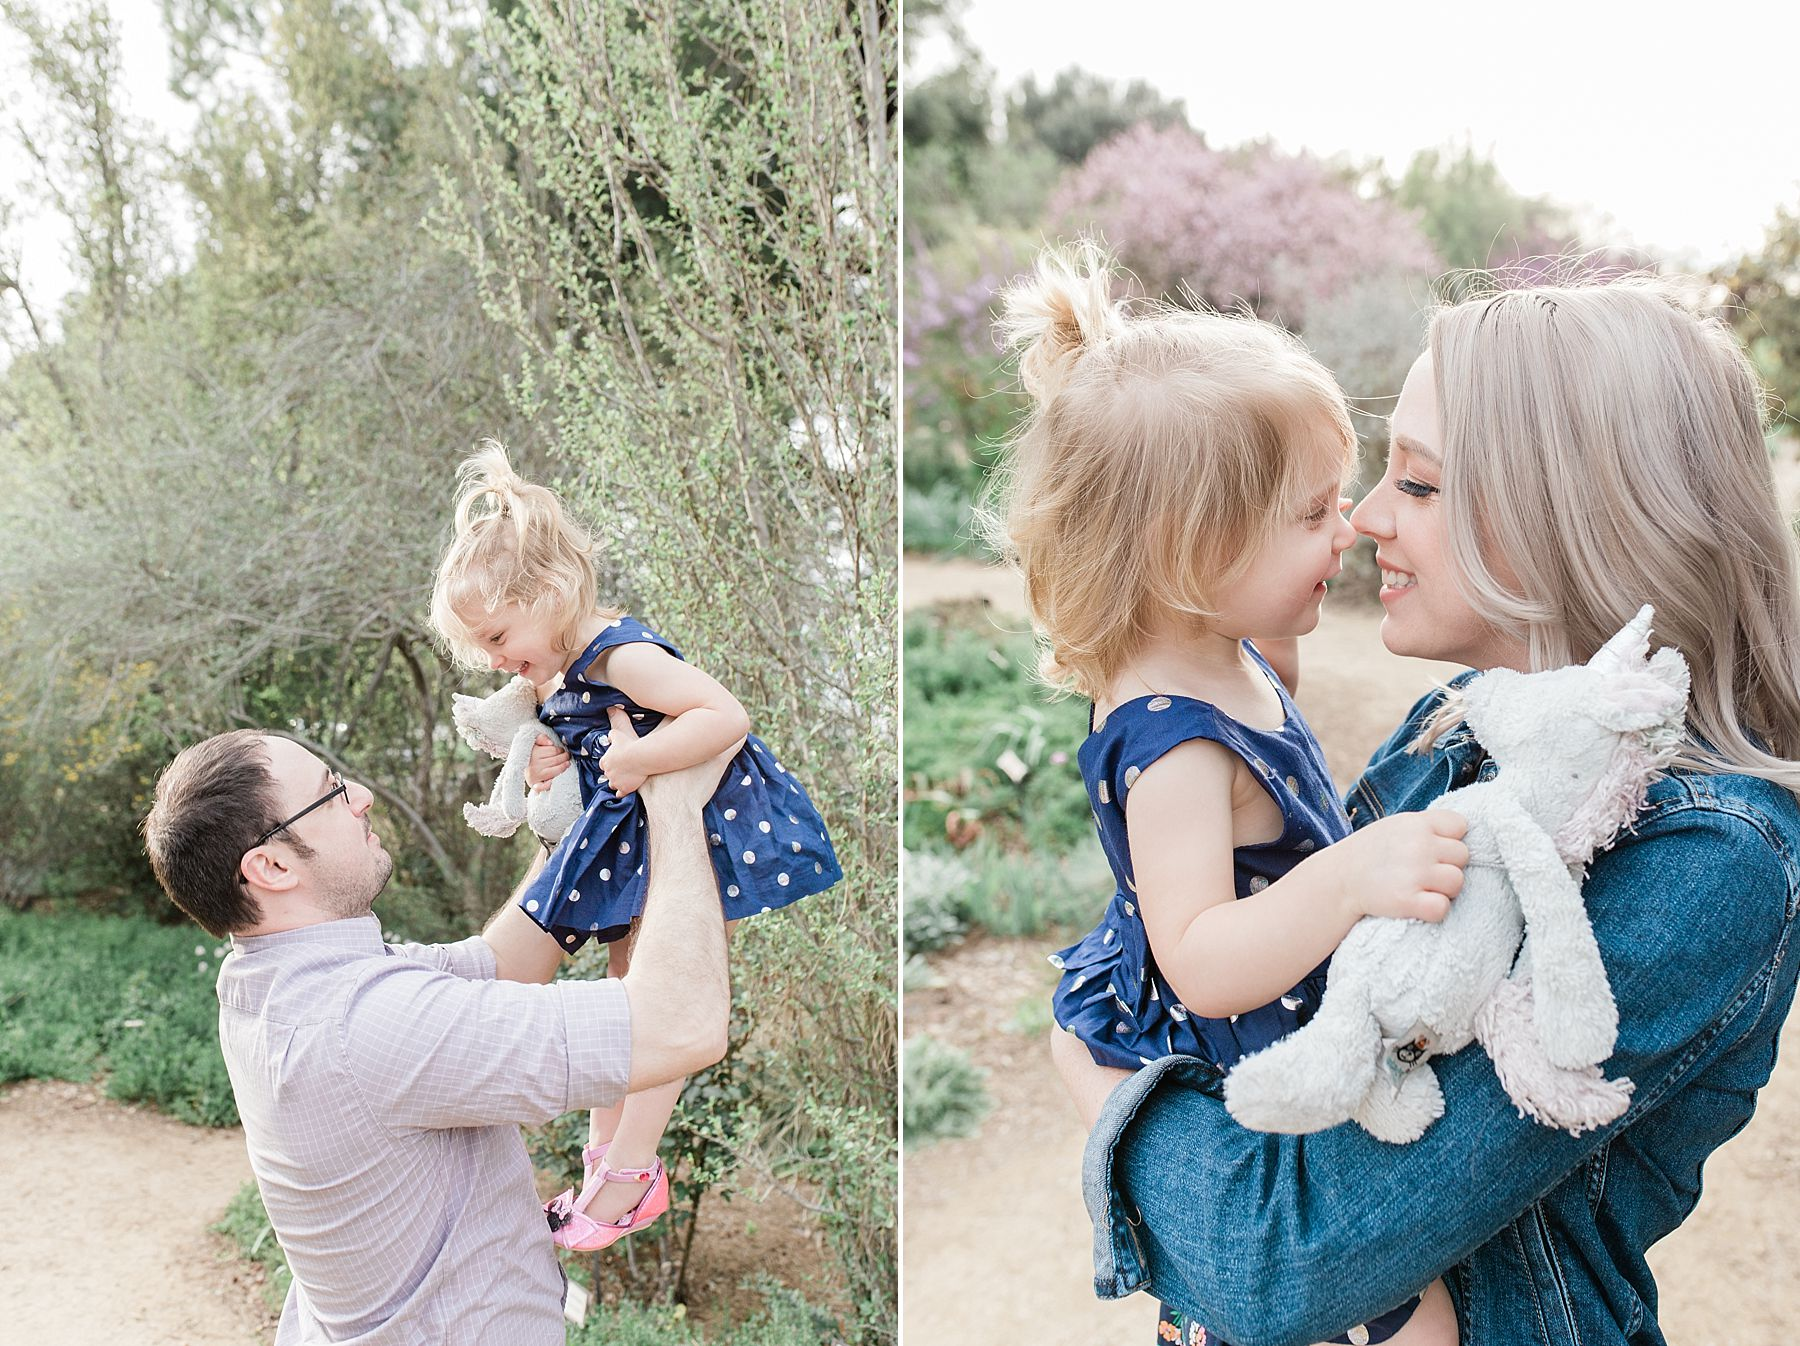 Davis Family Portraits at UC Davis Arboretum - Padovani Family - Ashley Baumgartner - Davis Family Photographer_0002.jpg